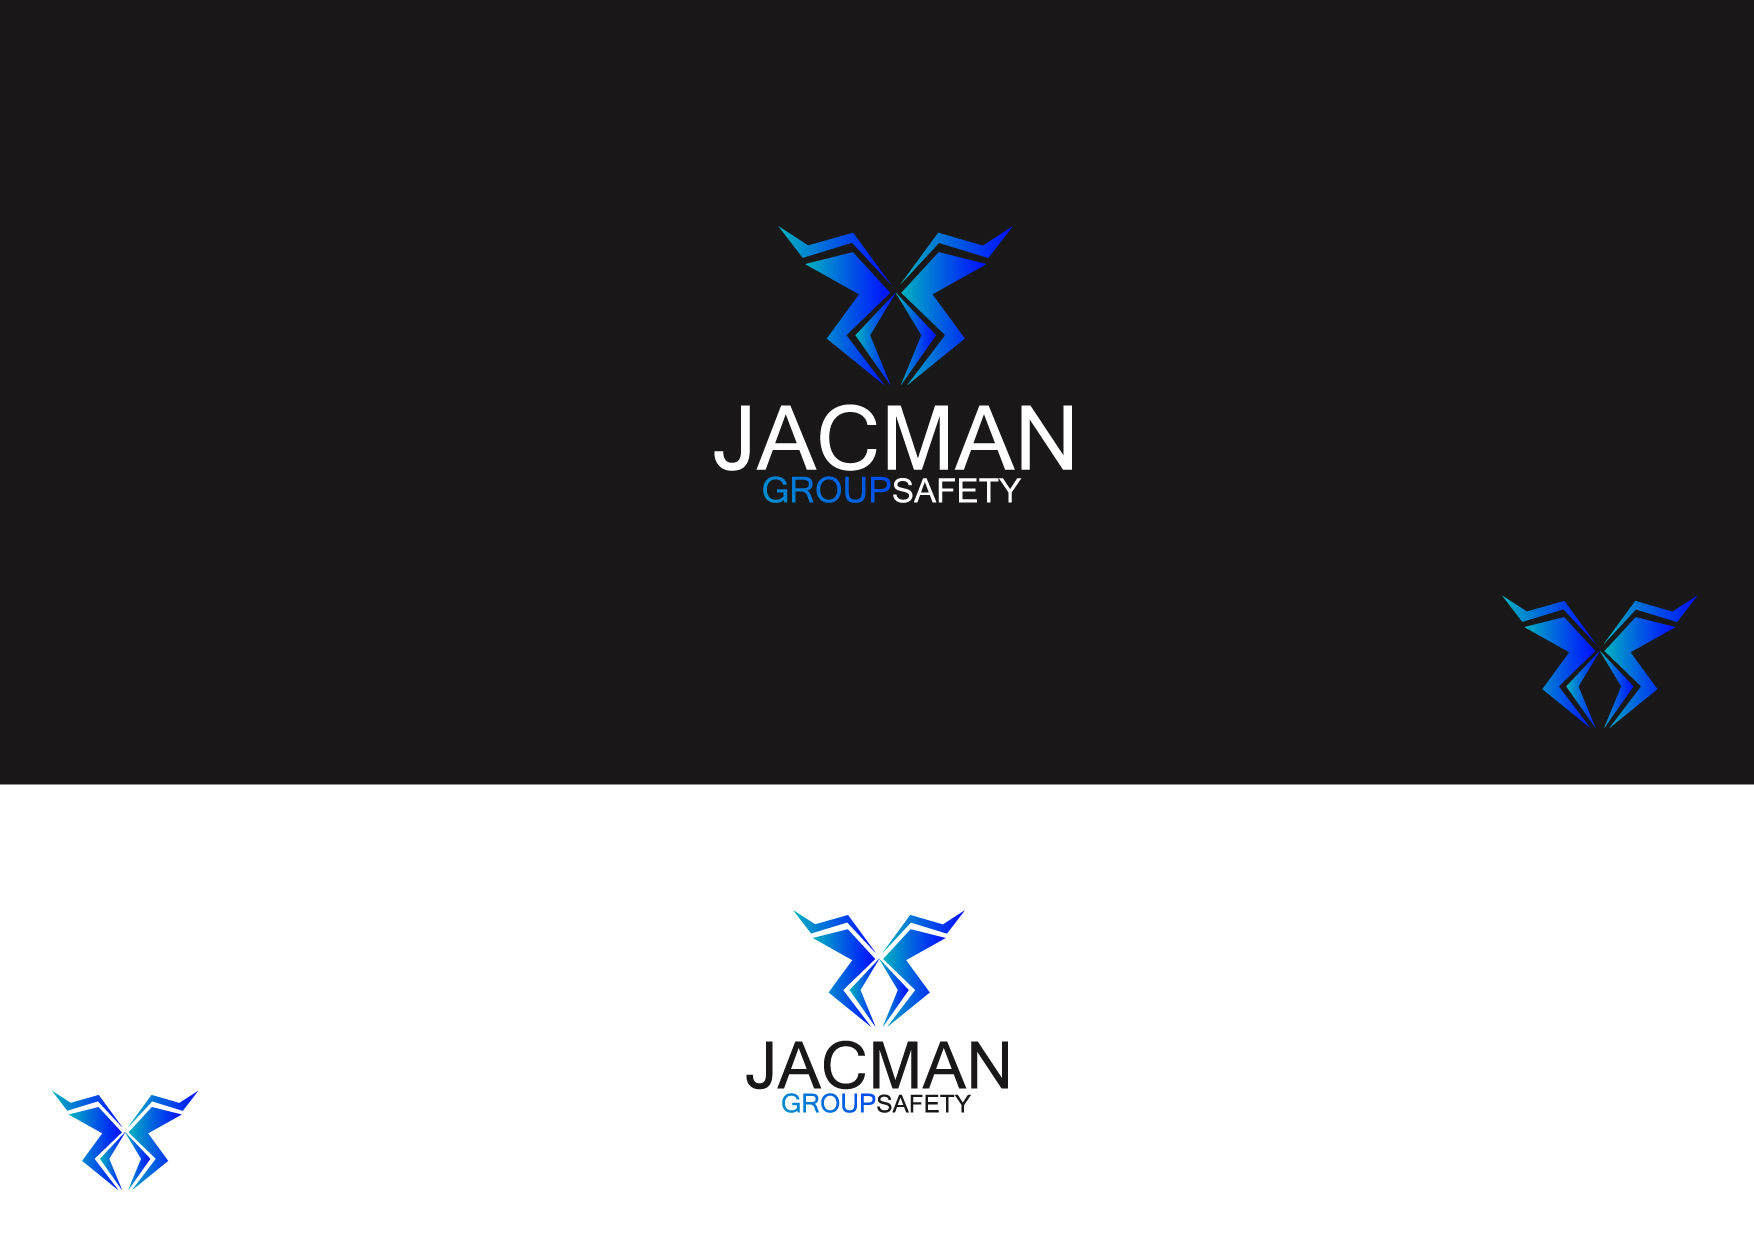 Logo Design by Osi Indra - Entry No. 66 in the Logo Design Contest The Jacman Group Logo Design.